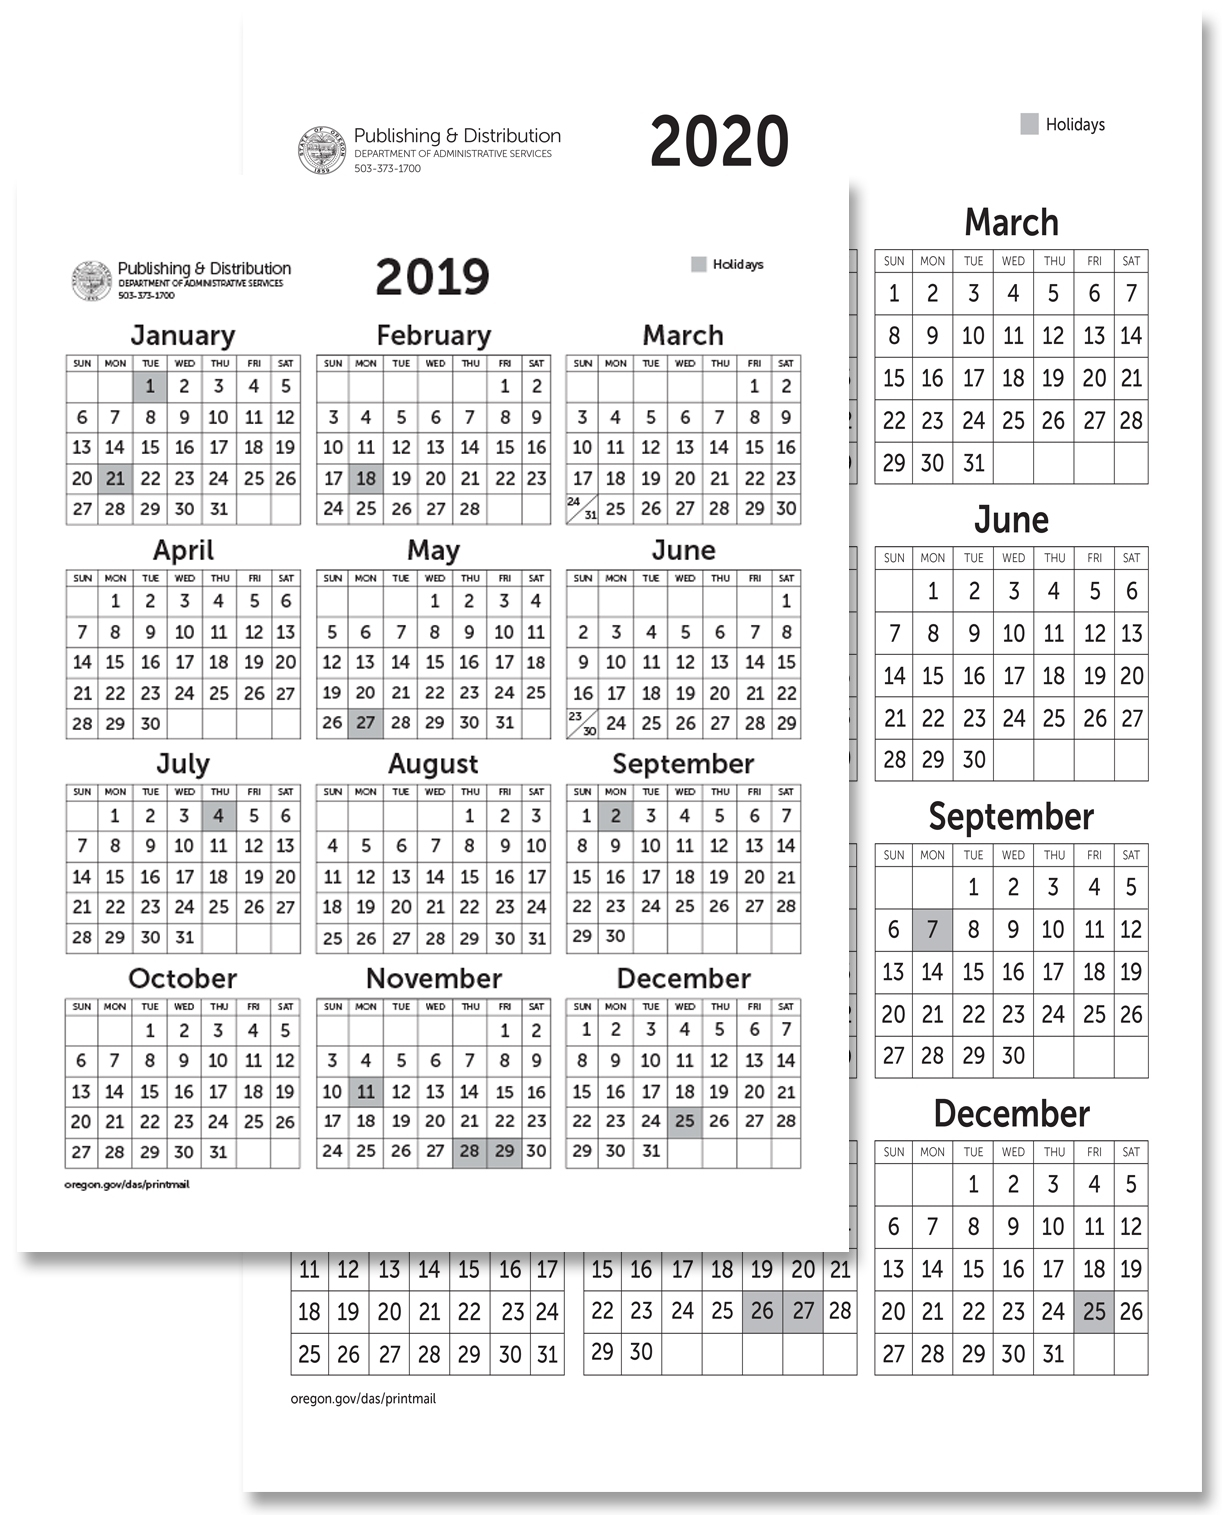 State Of Oregon: Printing, Mailing And Distribution Services - Calendars intended for Printable 8.5 X 11 2020 Calendar